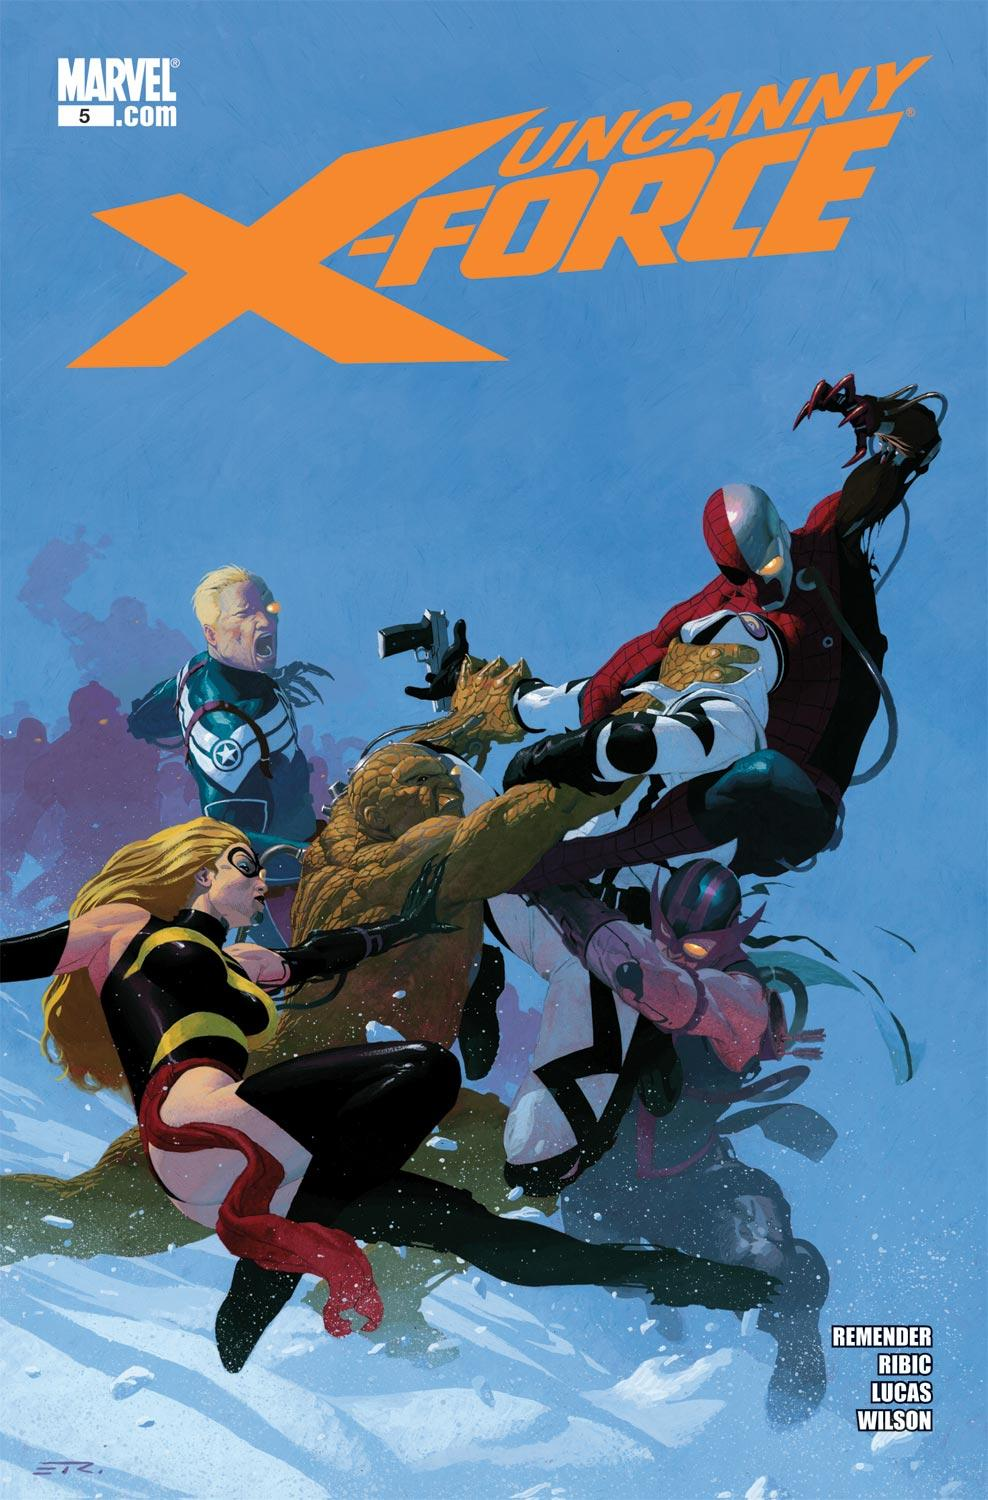 Uncanny X-Force (2010) #5